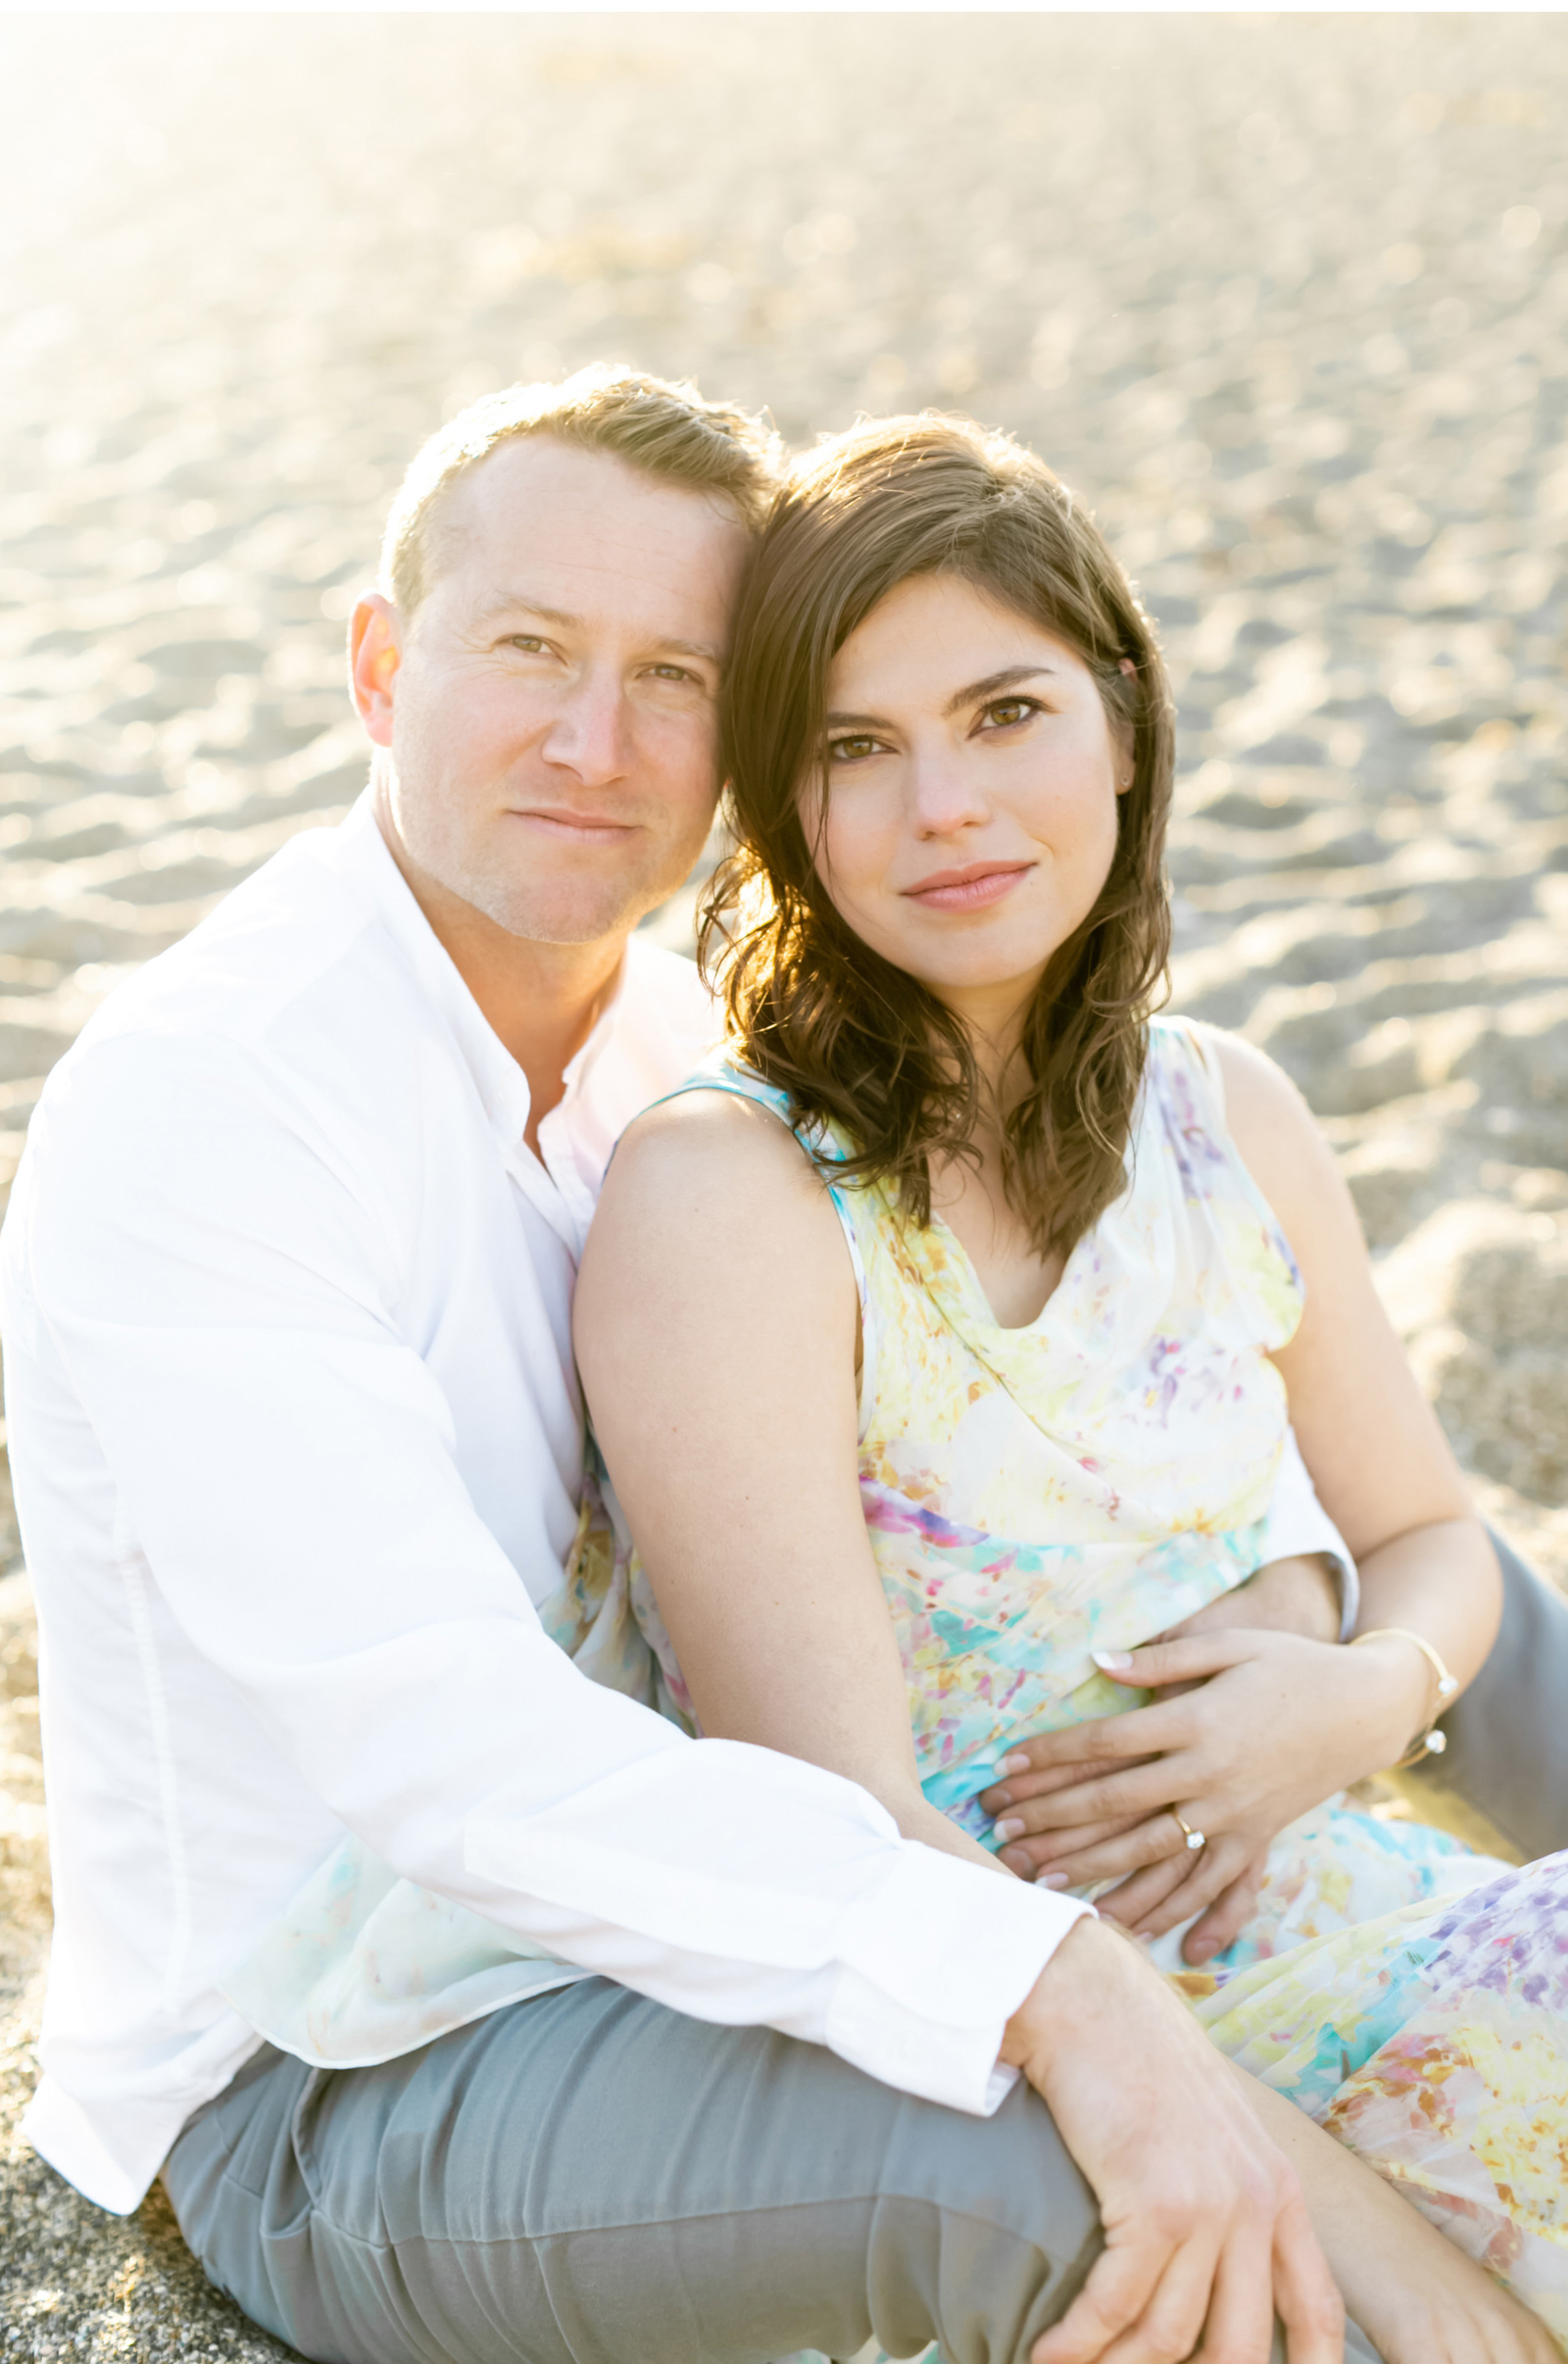 Malibu-Wedding-Photographer-Fine-Art-Photography-Professional-Wedding-Photography-Ocean-Engagement-Natalie-Schutt-Photography_08.jpg